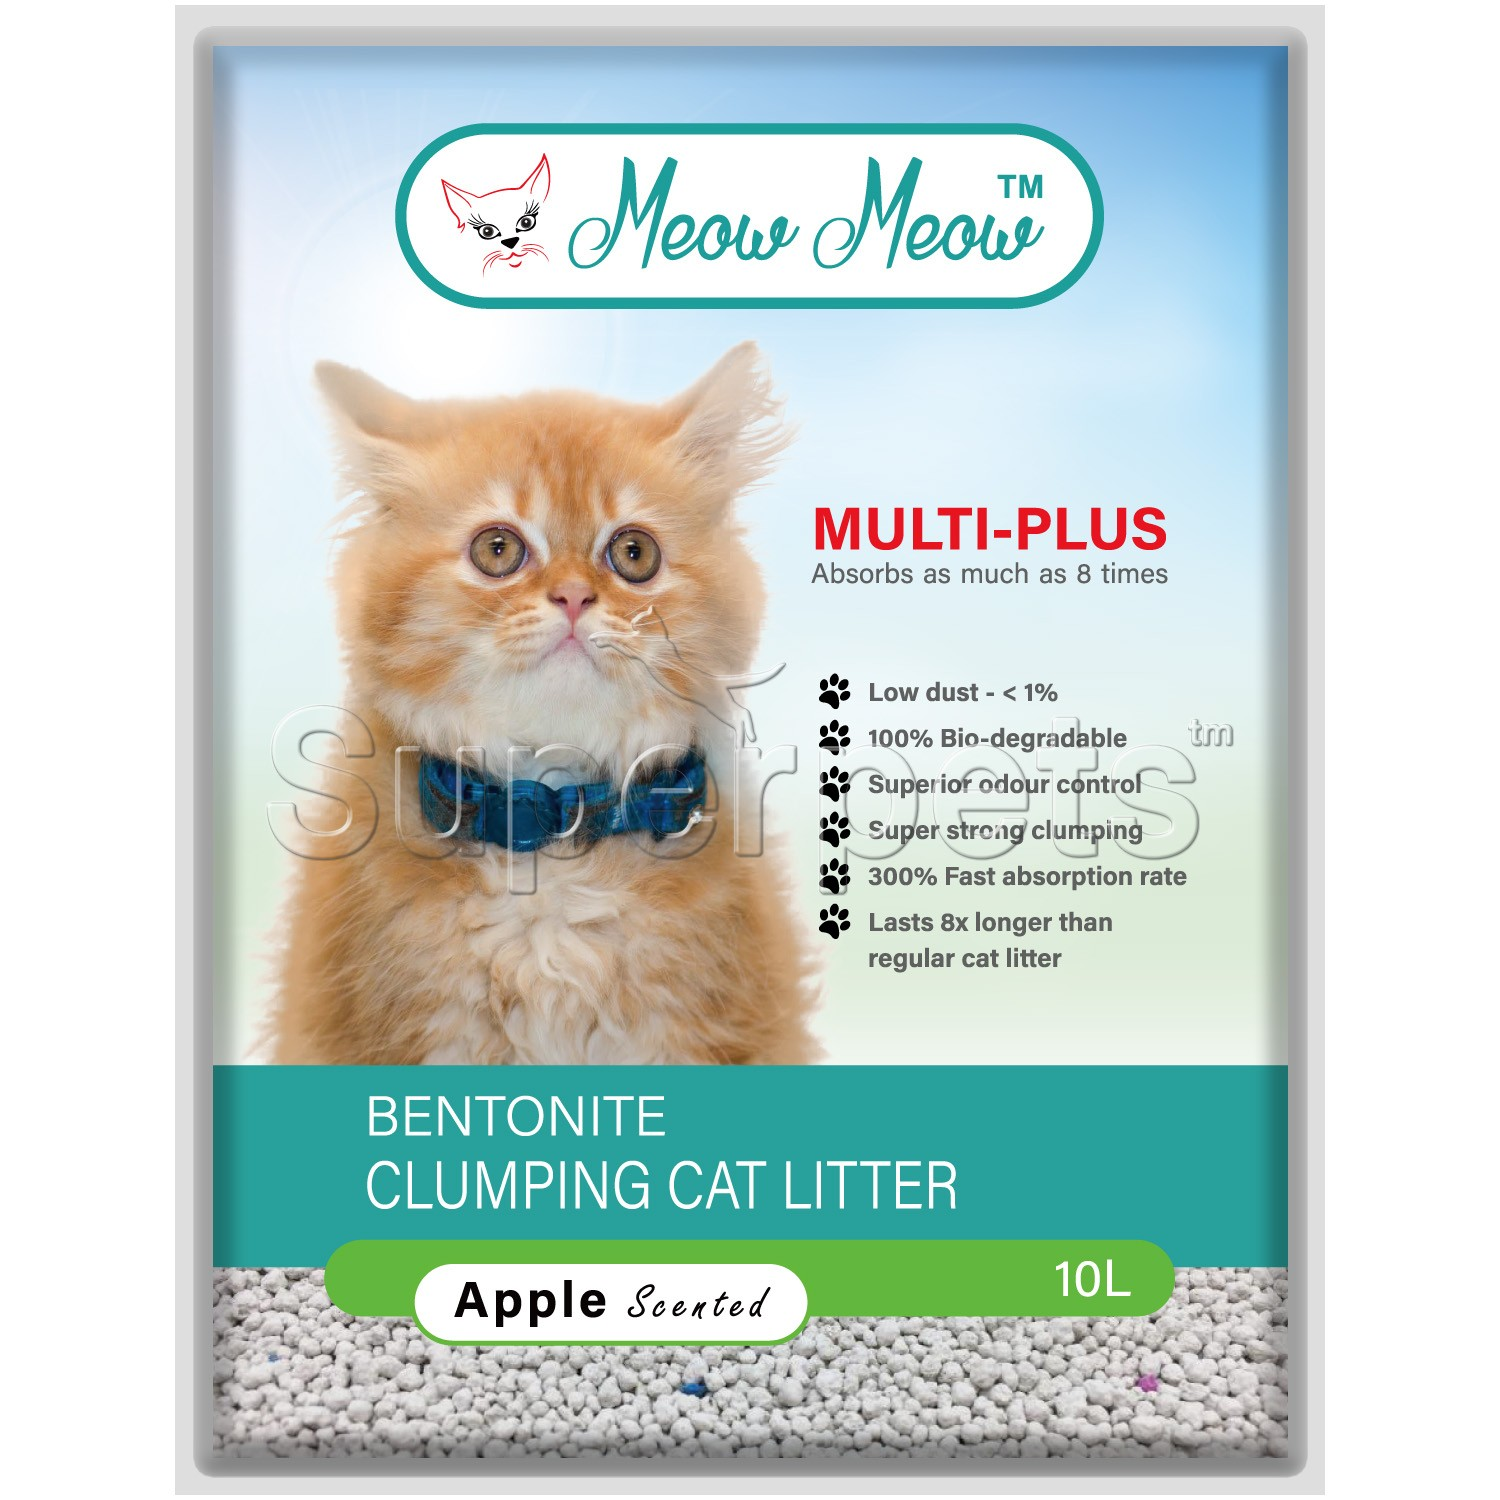 Meow Meow Multi-Plus Bentonite Cat Litter – Apple 10L